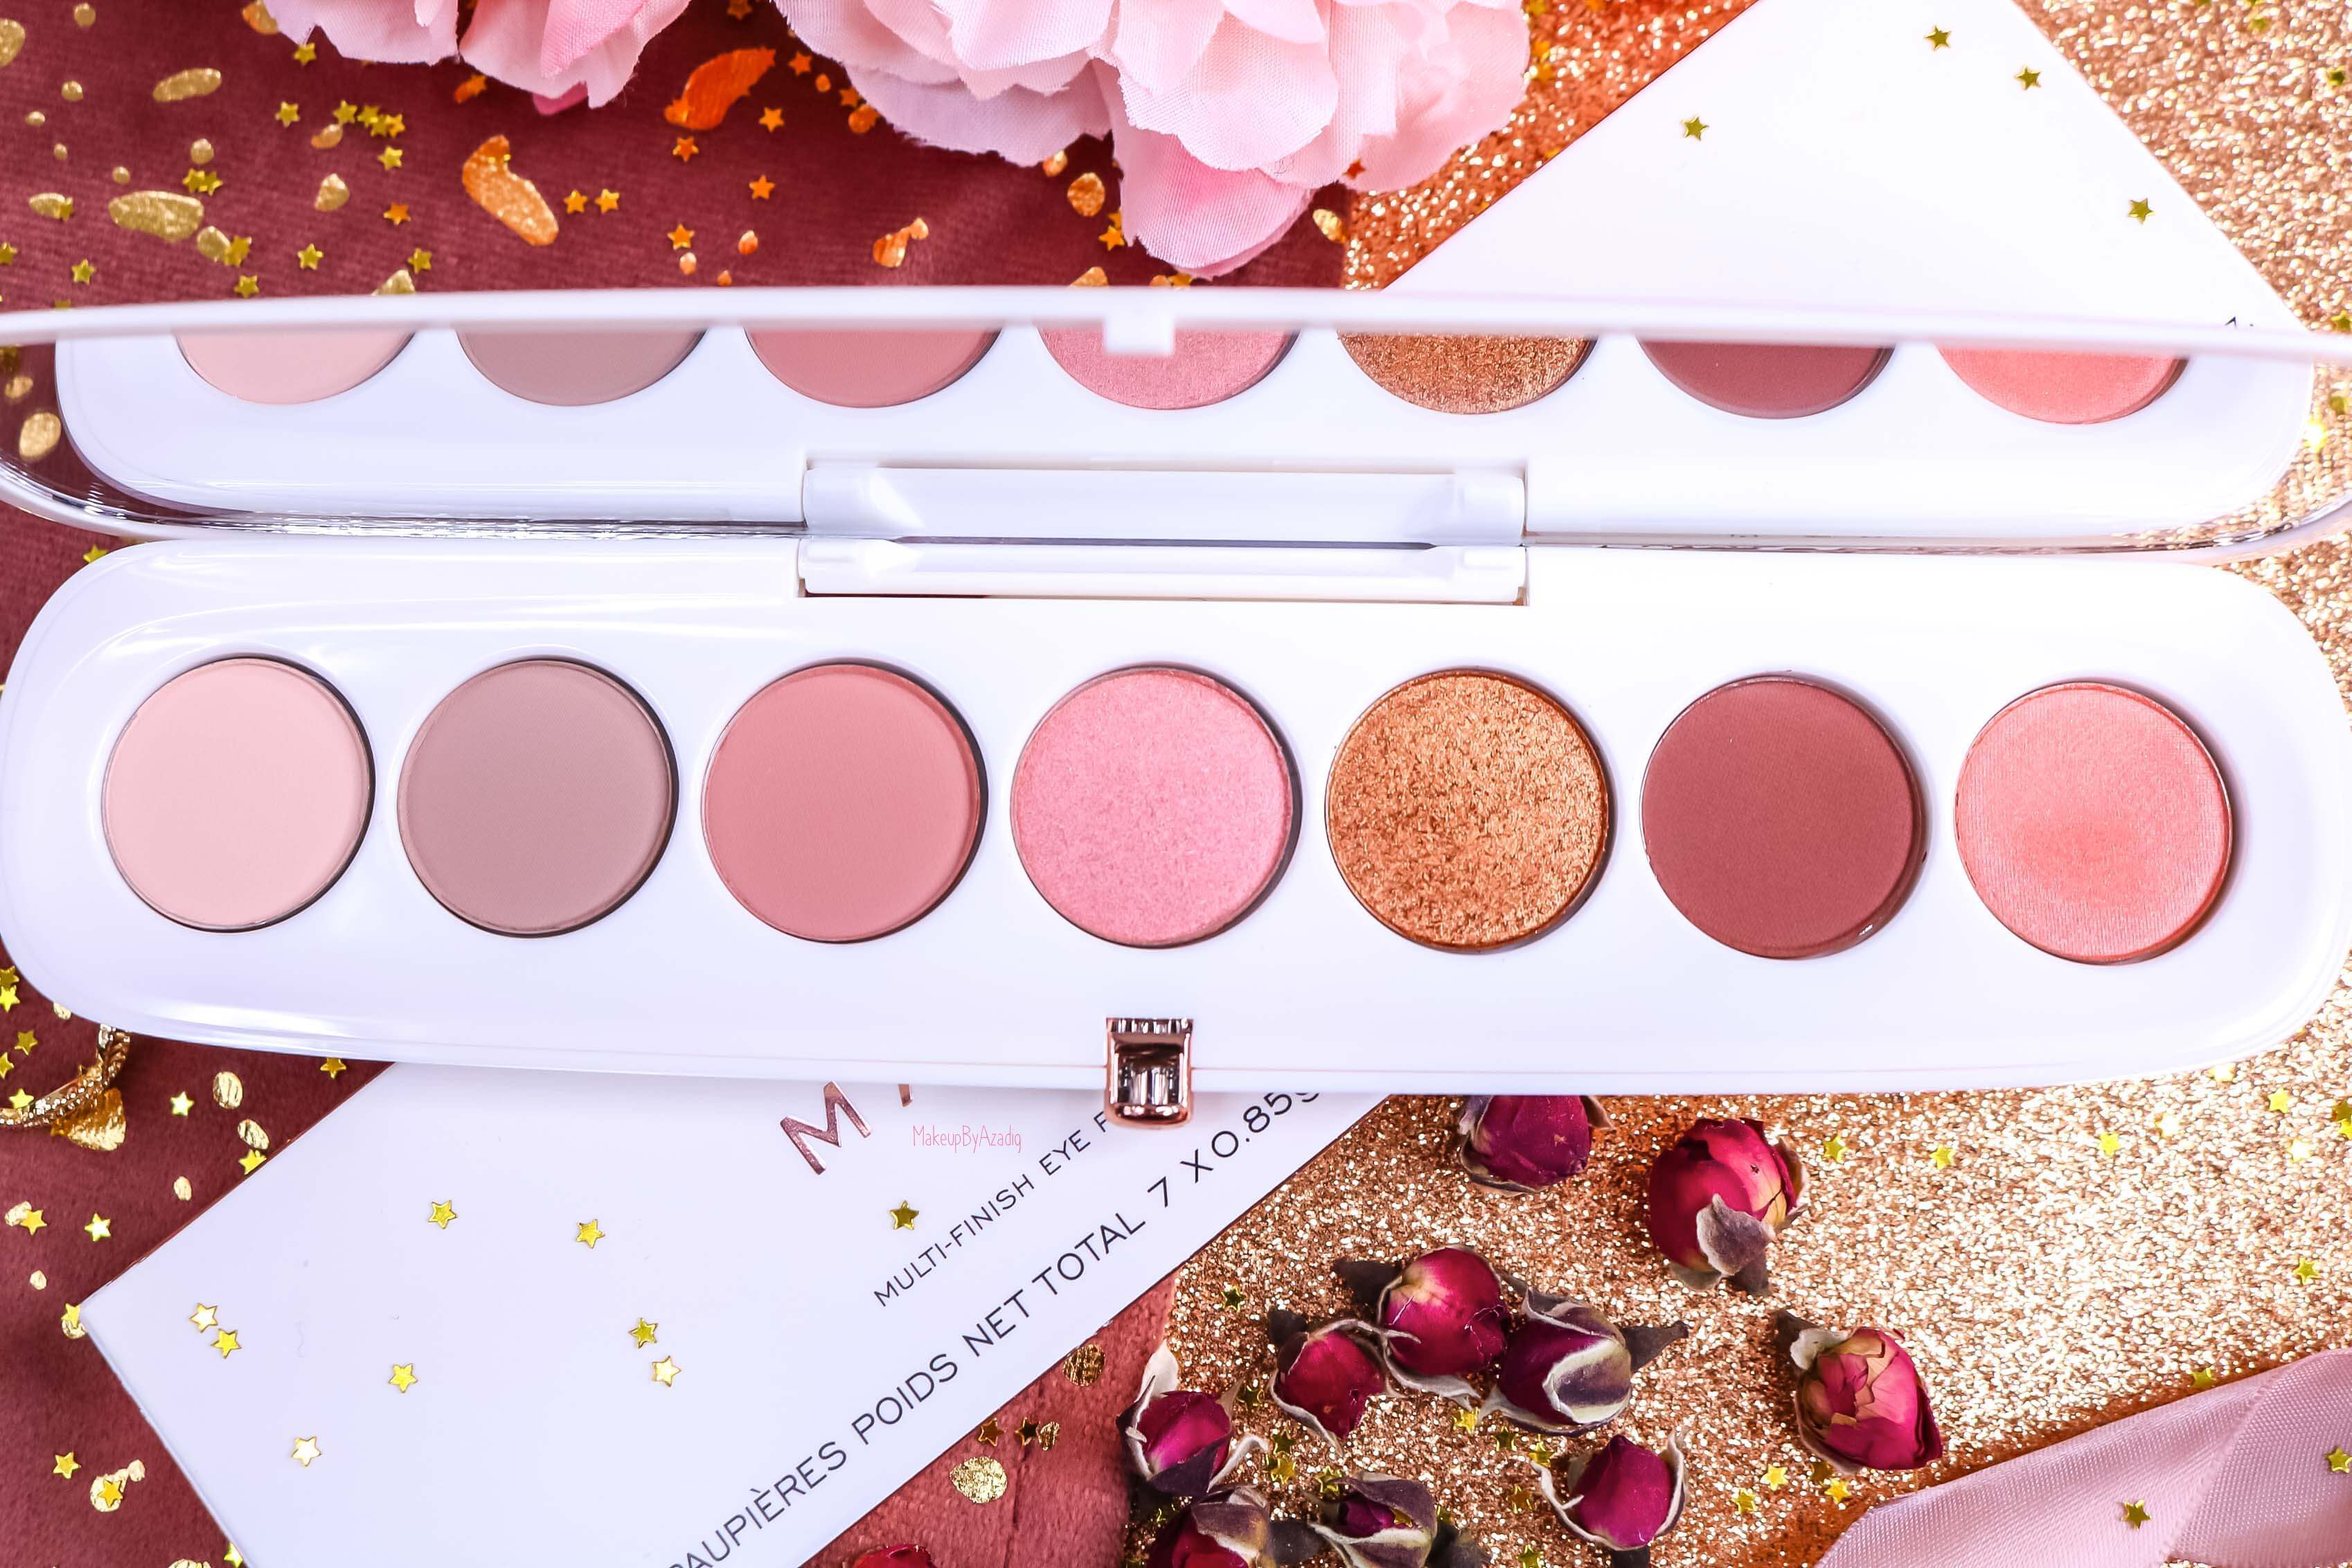 revue-palette-fards-paupieres-eye-conic-fantascene-marc-jacobs-gold-rose-sephora-france-avis-prix-swatch-tenue-makeupbyazadig-zoom